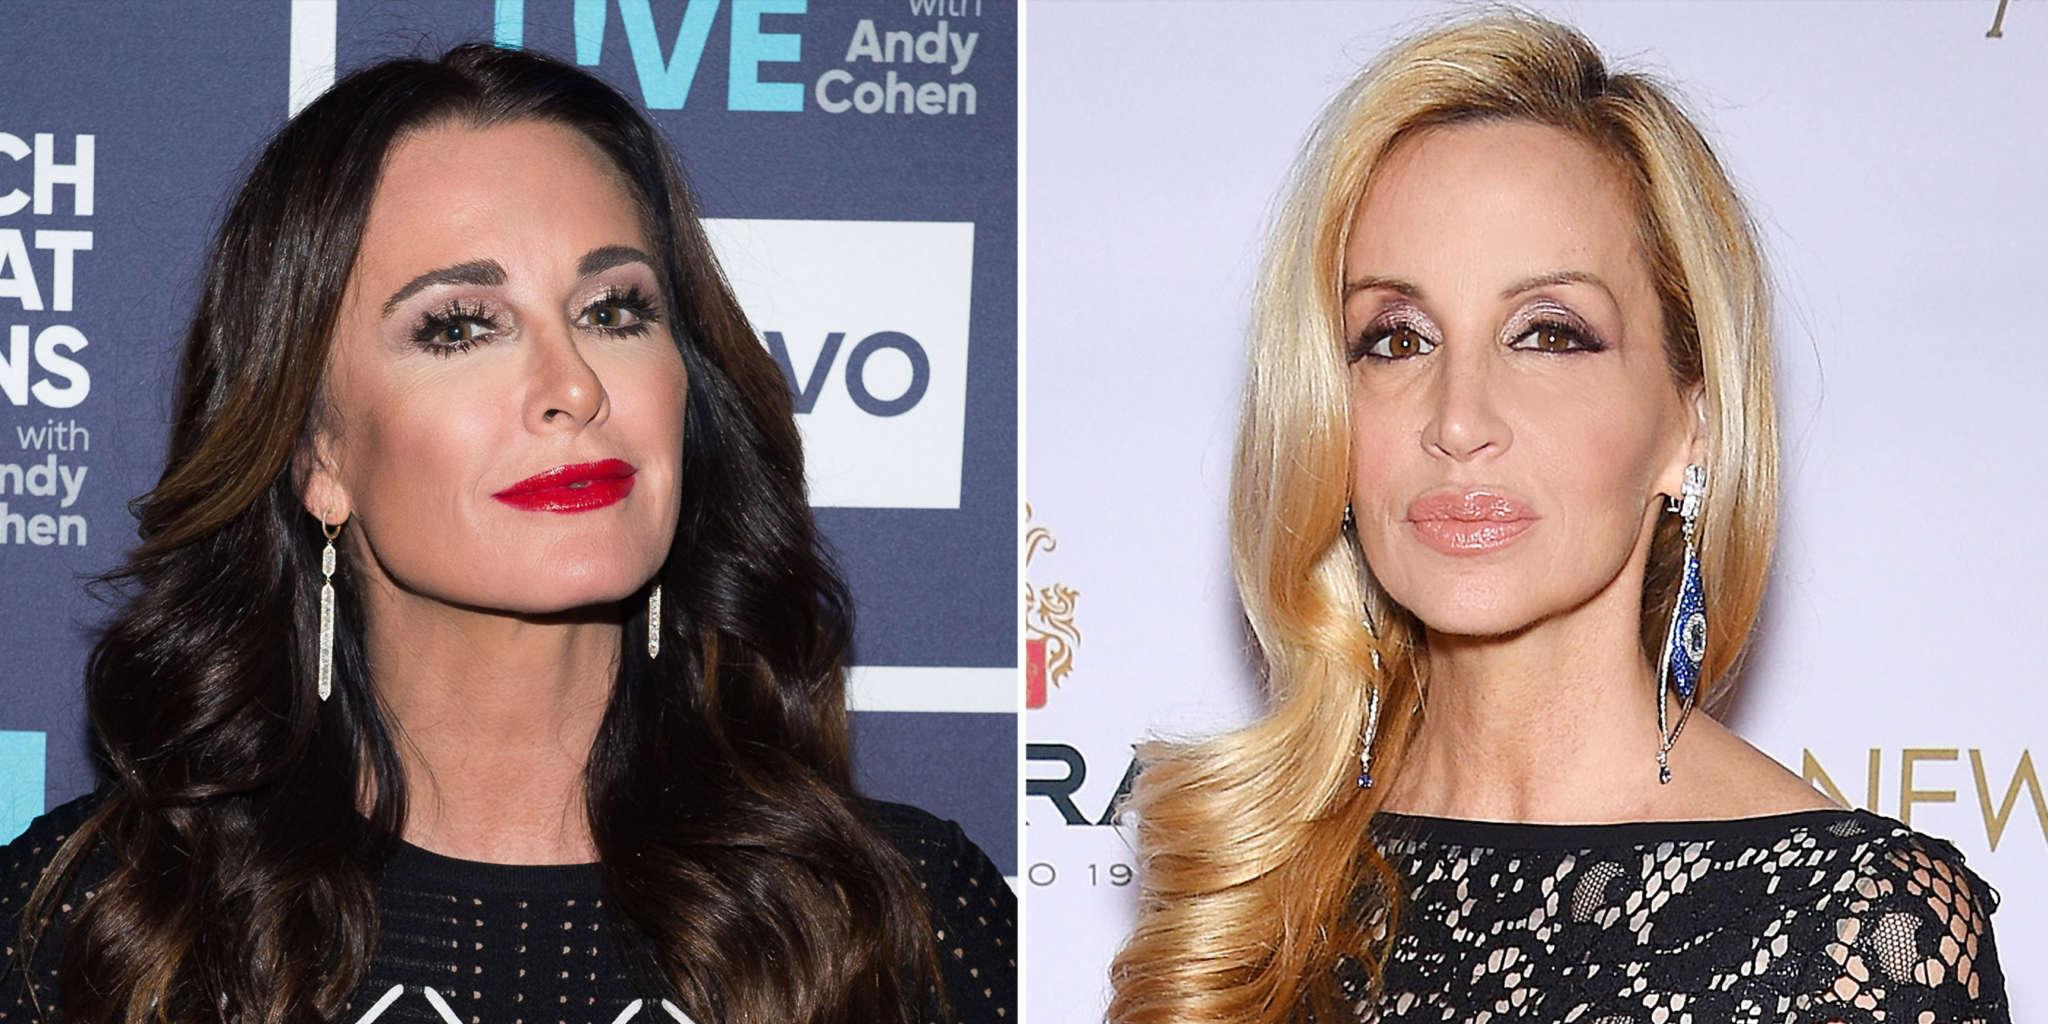 Camille Grammer Says The RHOBH Reunion Episode Would Have Been A'Dud' In Her Absence - She Shades Kyle Richards!